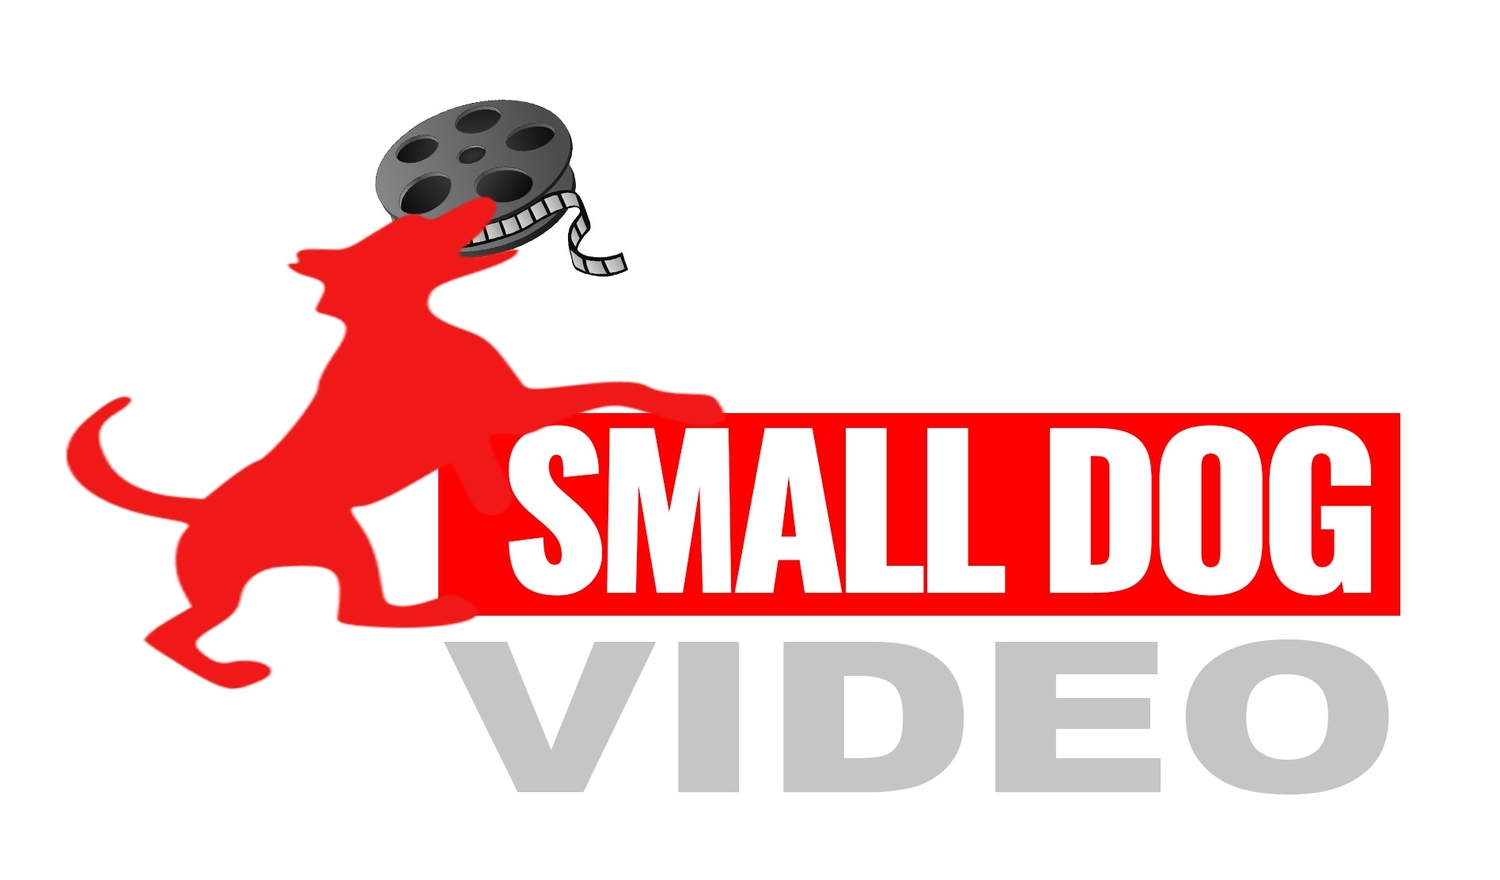 Small Dog Video